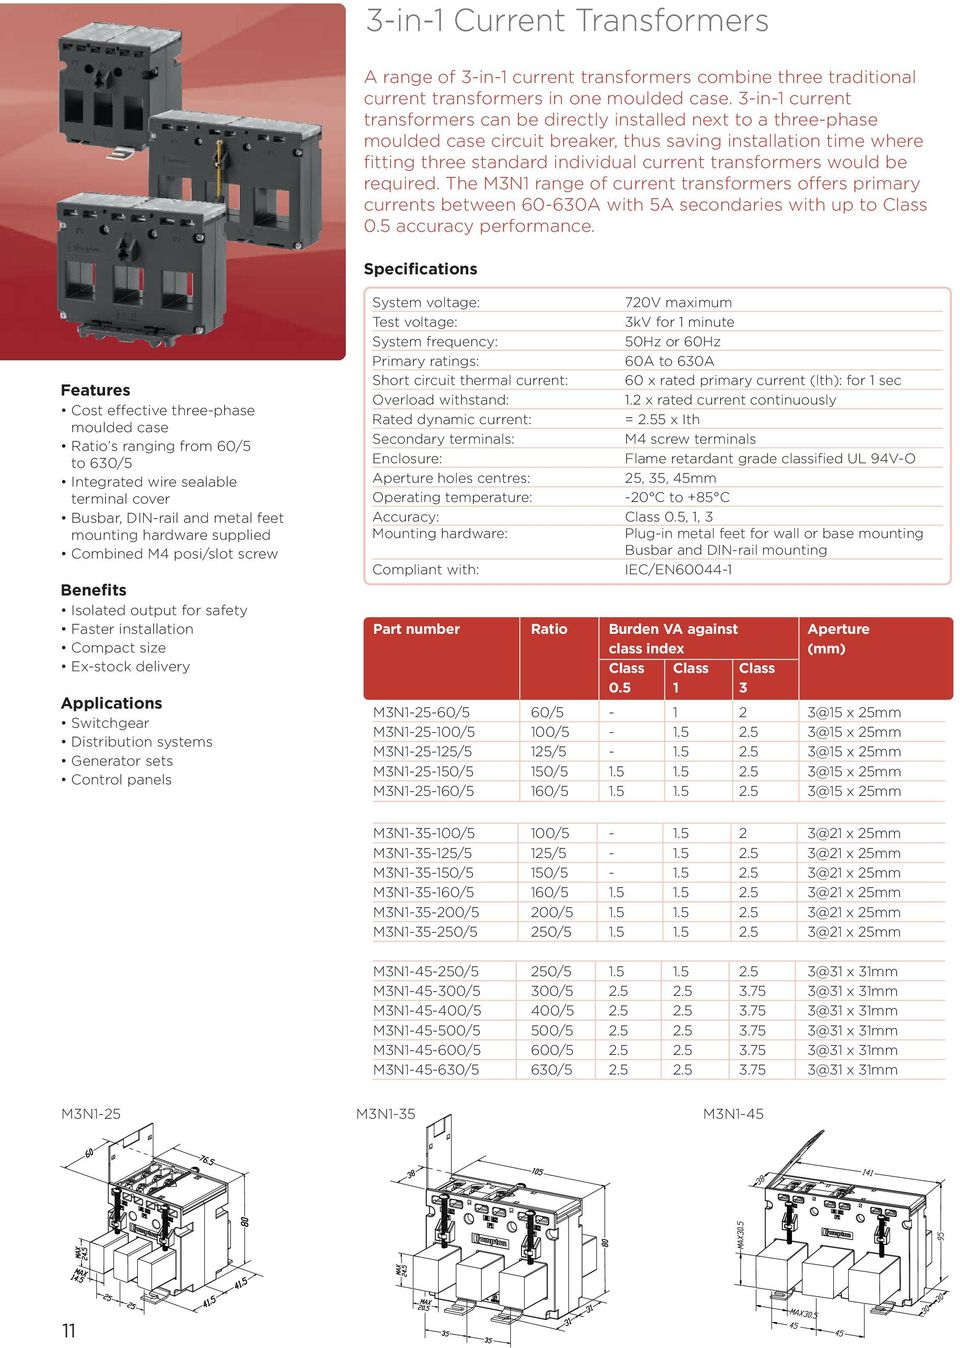 Tape Wound Split Core And Ebony Current Transformers Pdf Basic Transformer Wiring Diagram The M3n1 Range Of Offers Primary Currents Between 60